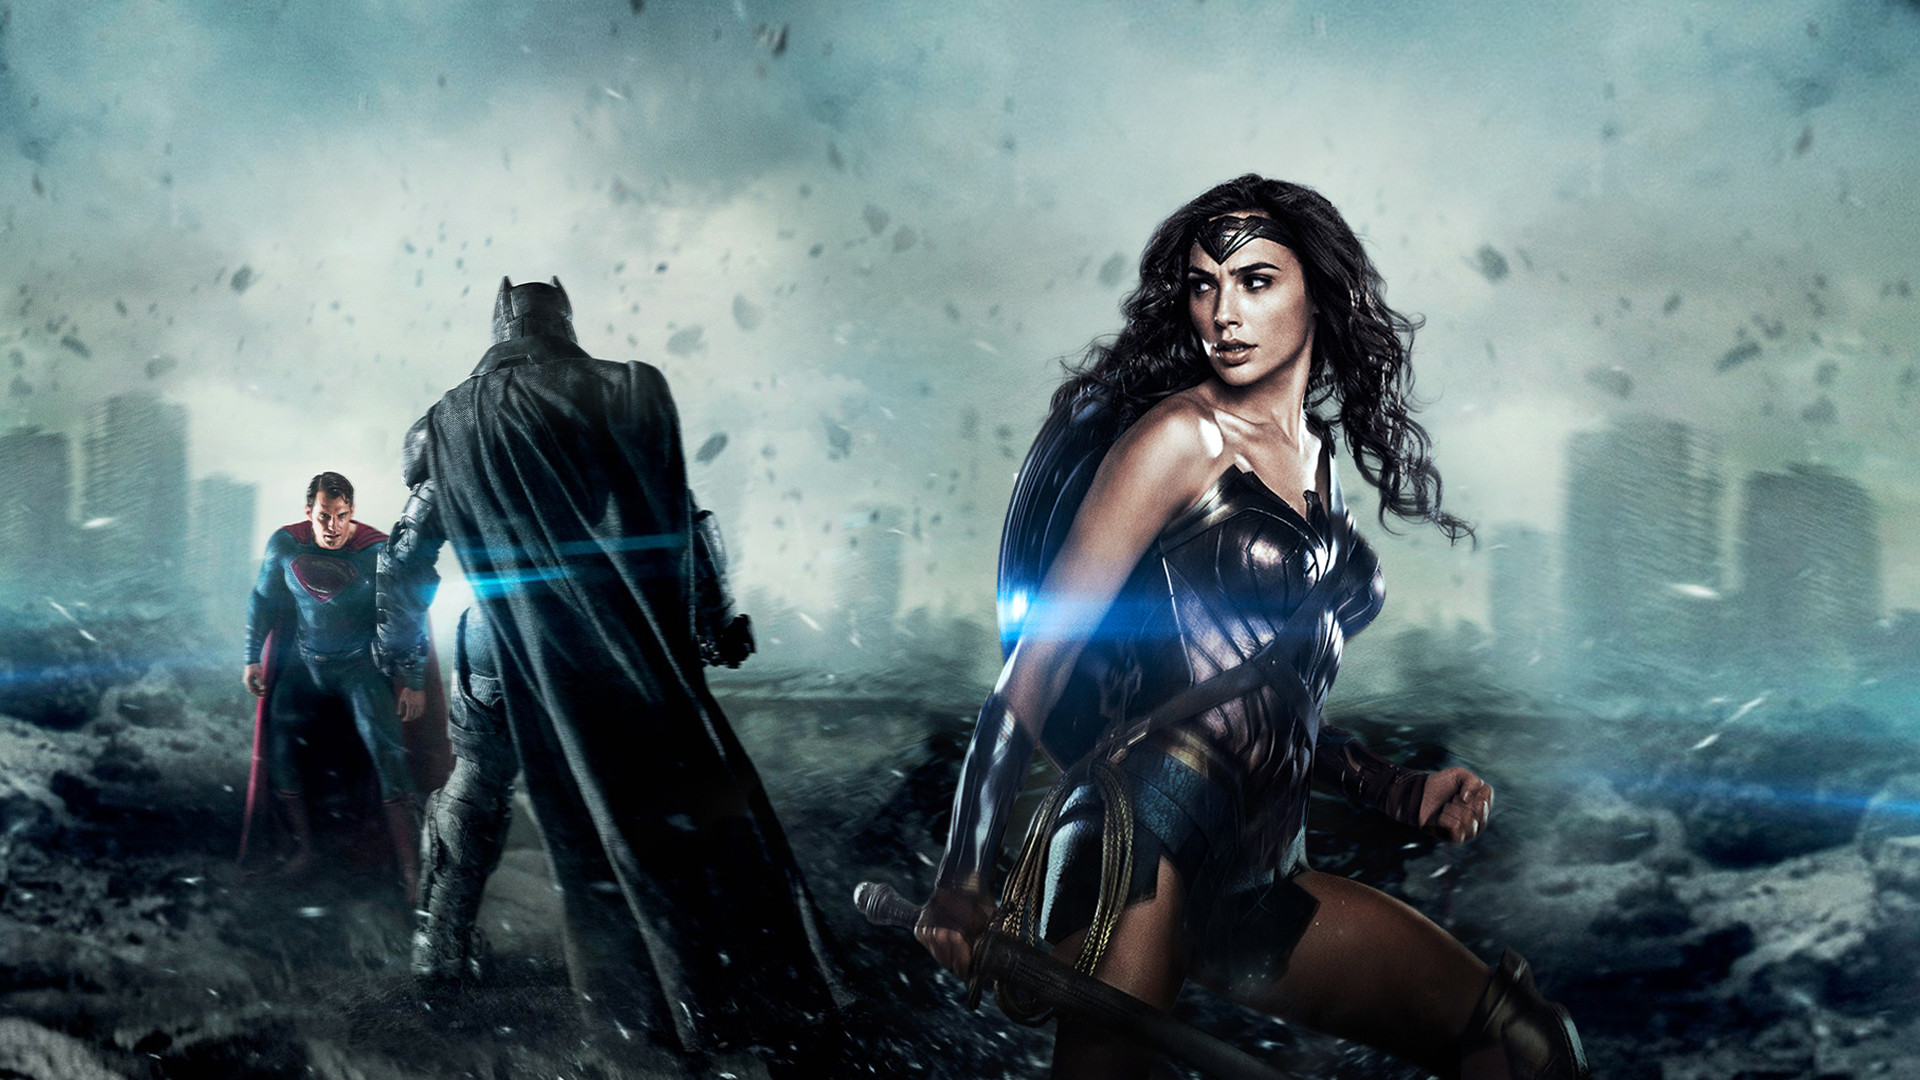 Res: 1920x1080, Superman, dc Comics, Doomsday, Action Film, Batman HD Wallpaper, Movies  Picture, Background and Image